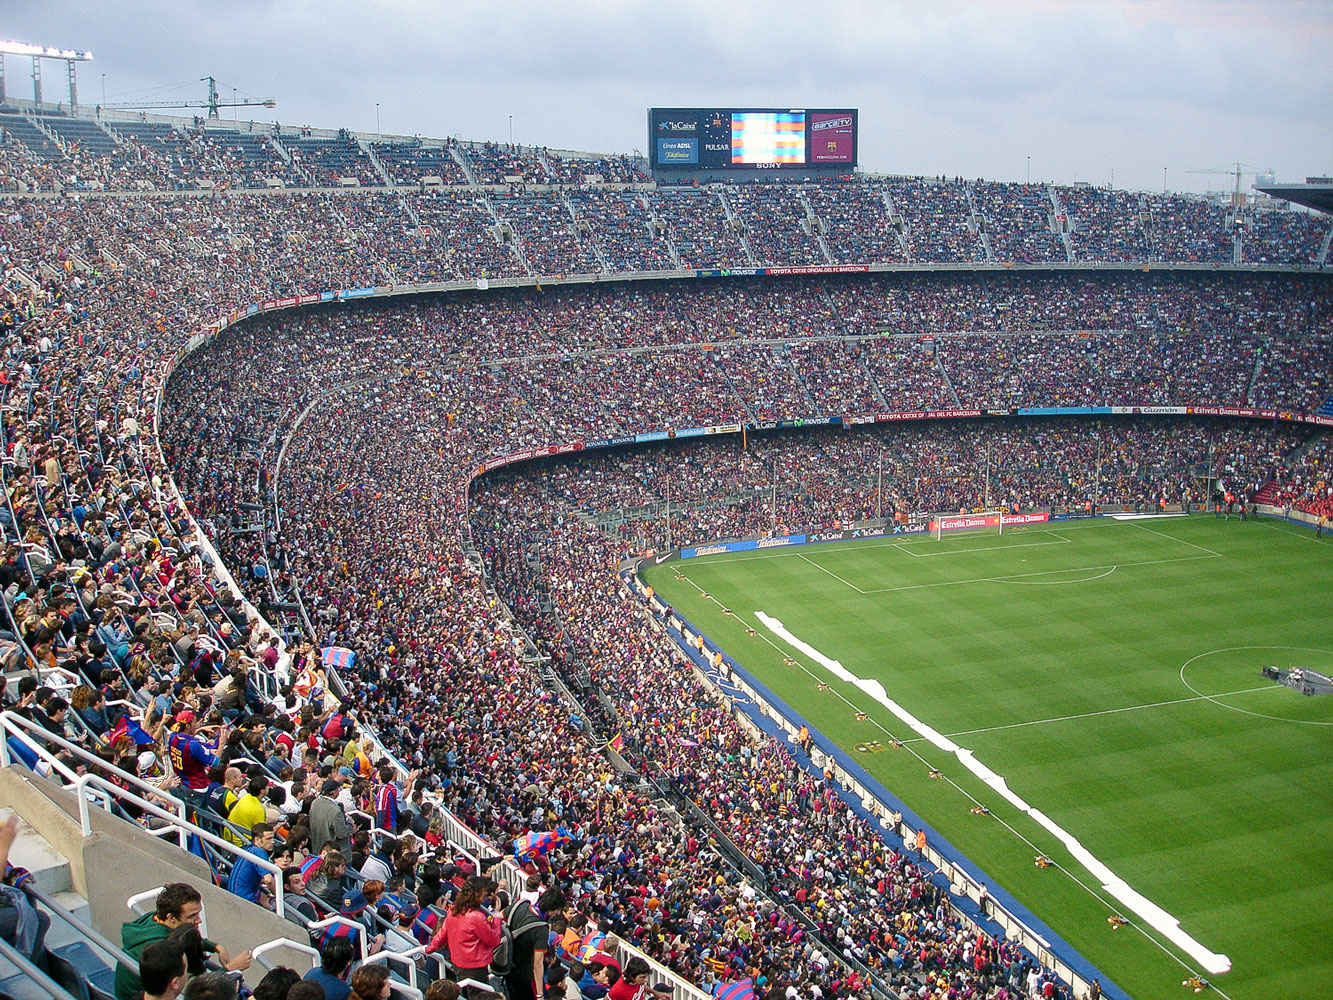 estadio-camp-nou-lleno.jpg